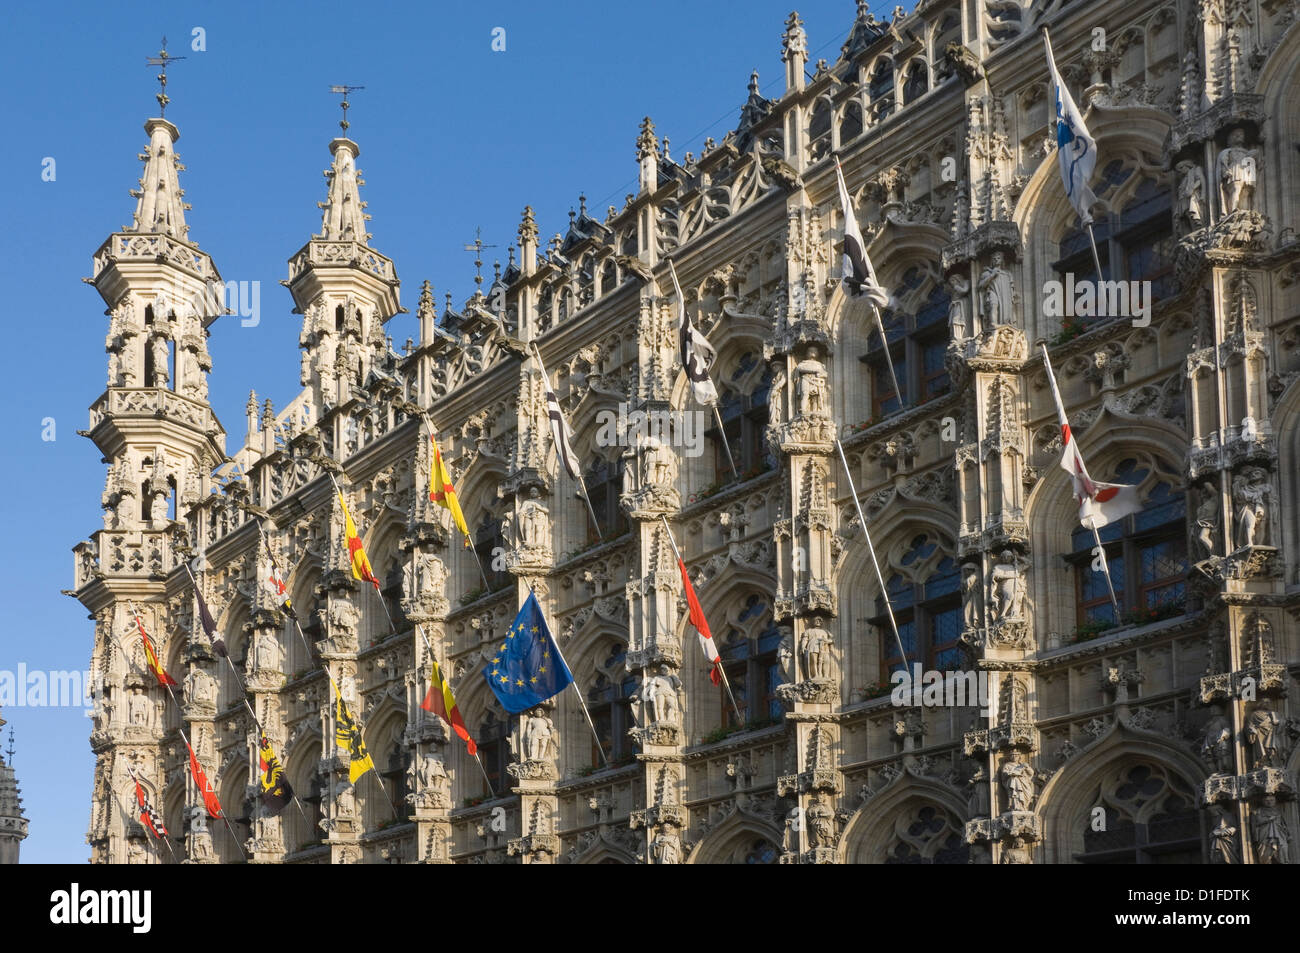 A detail of the stonework carving on the 15th century late Gothic Town Hall, Grote Markt, Leuven, Belgium, Europe - Stock Image